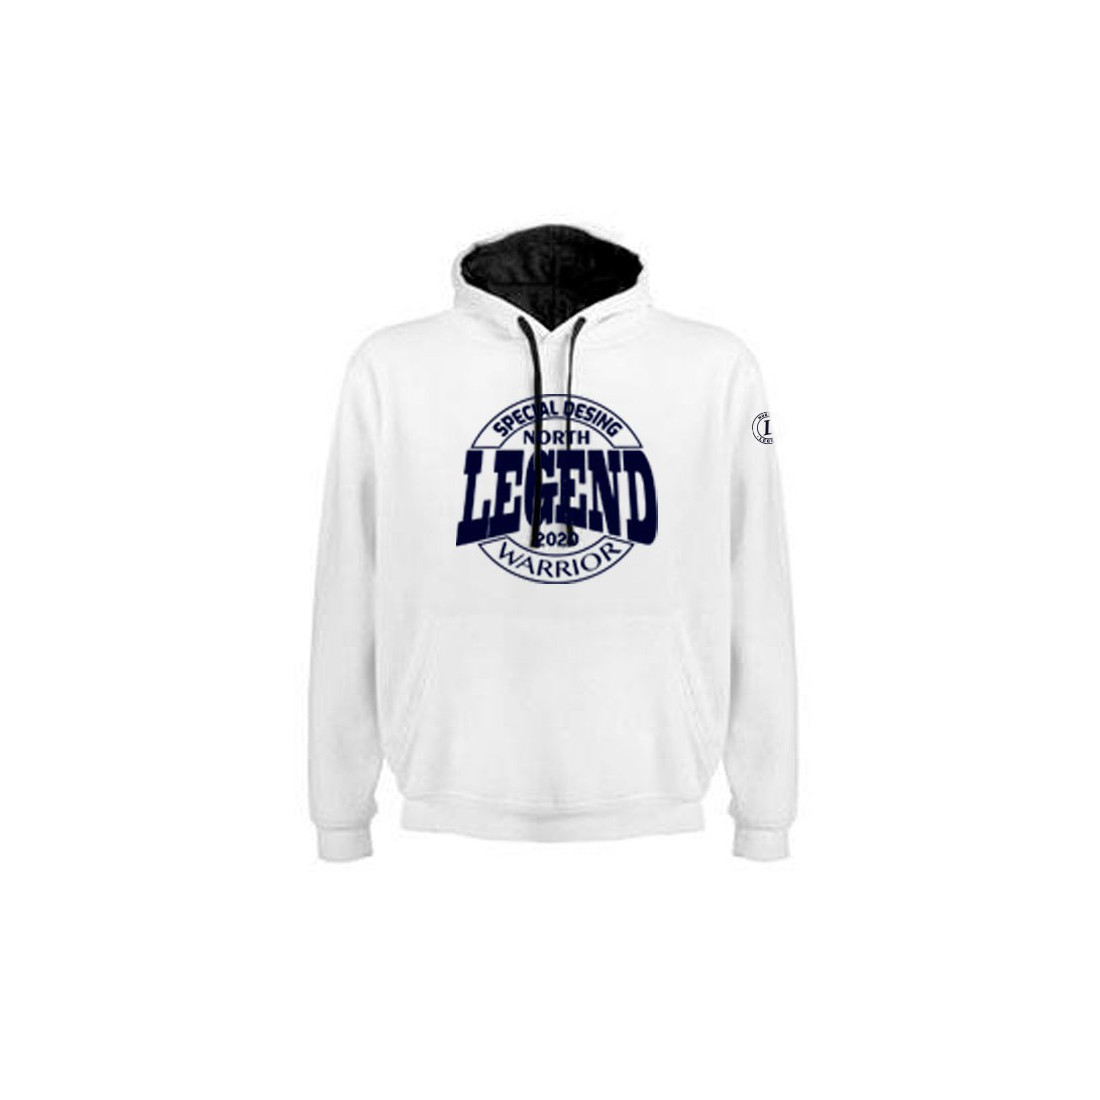 Sudadera Warrior Blanco-Marino